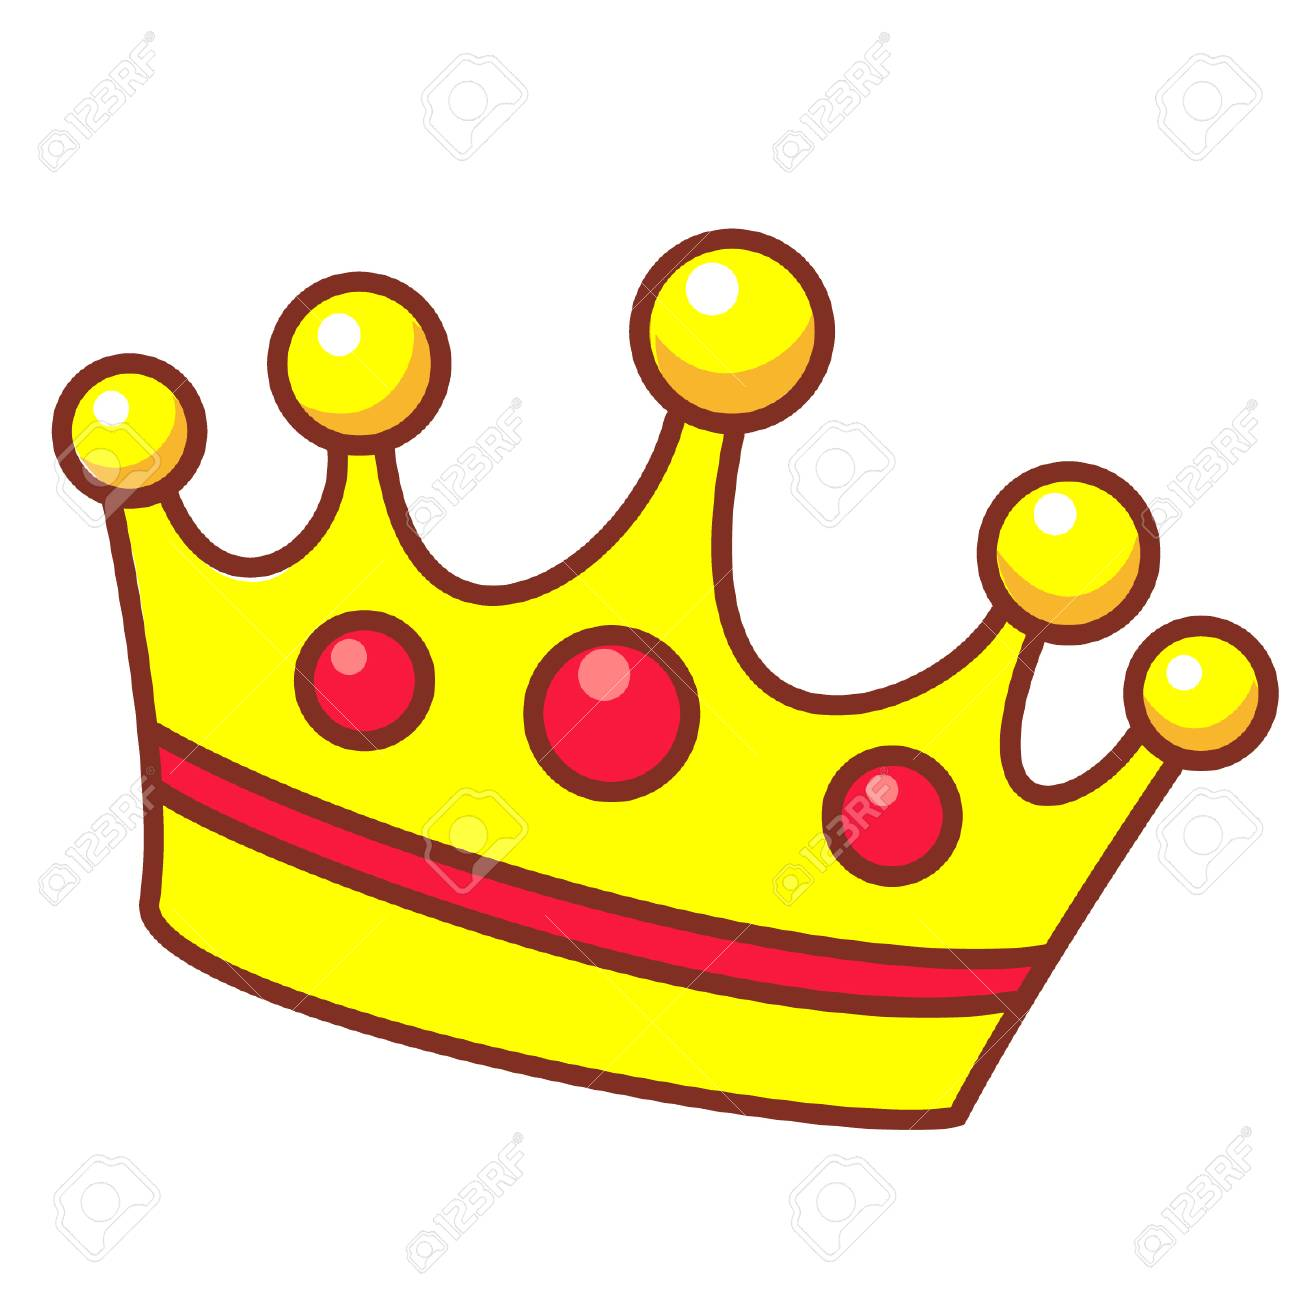 cartoon crown royalty free cliparts vectors and stock illustration rh 123rf com cartoon crown transparent background cartoon crown images